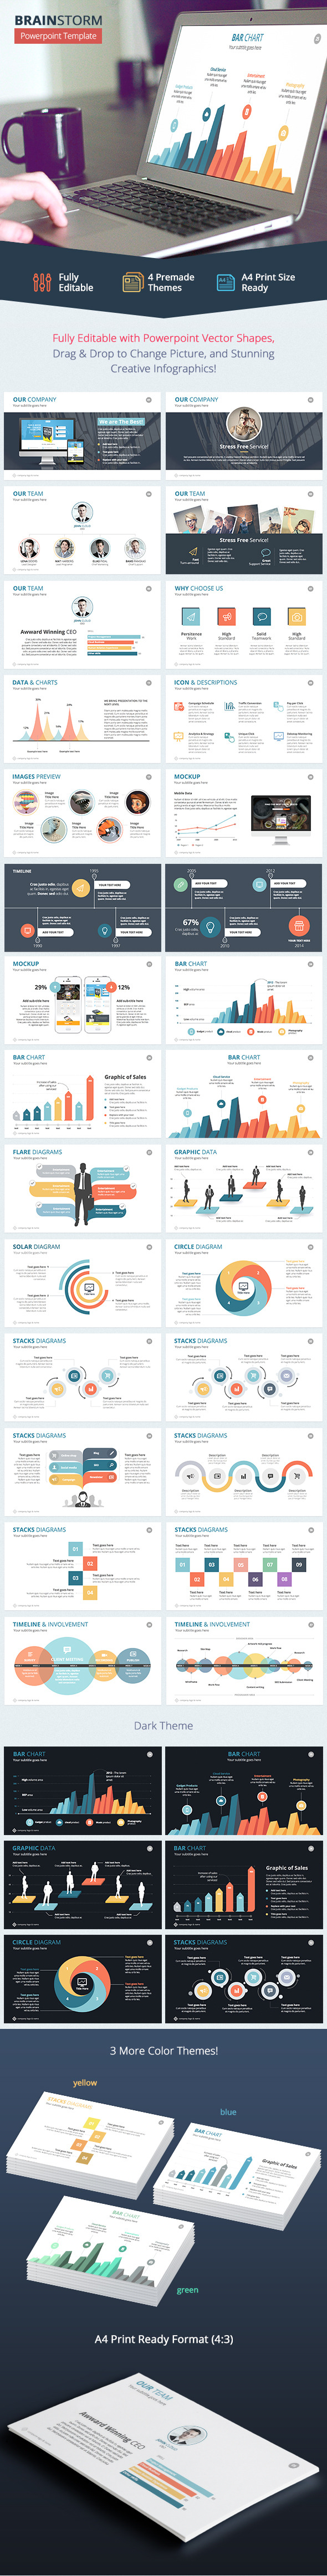 Brainstorm - Powerpoint Template - Abstract PowerPoint Templates